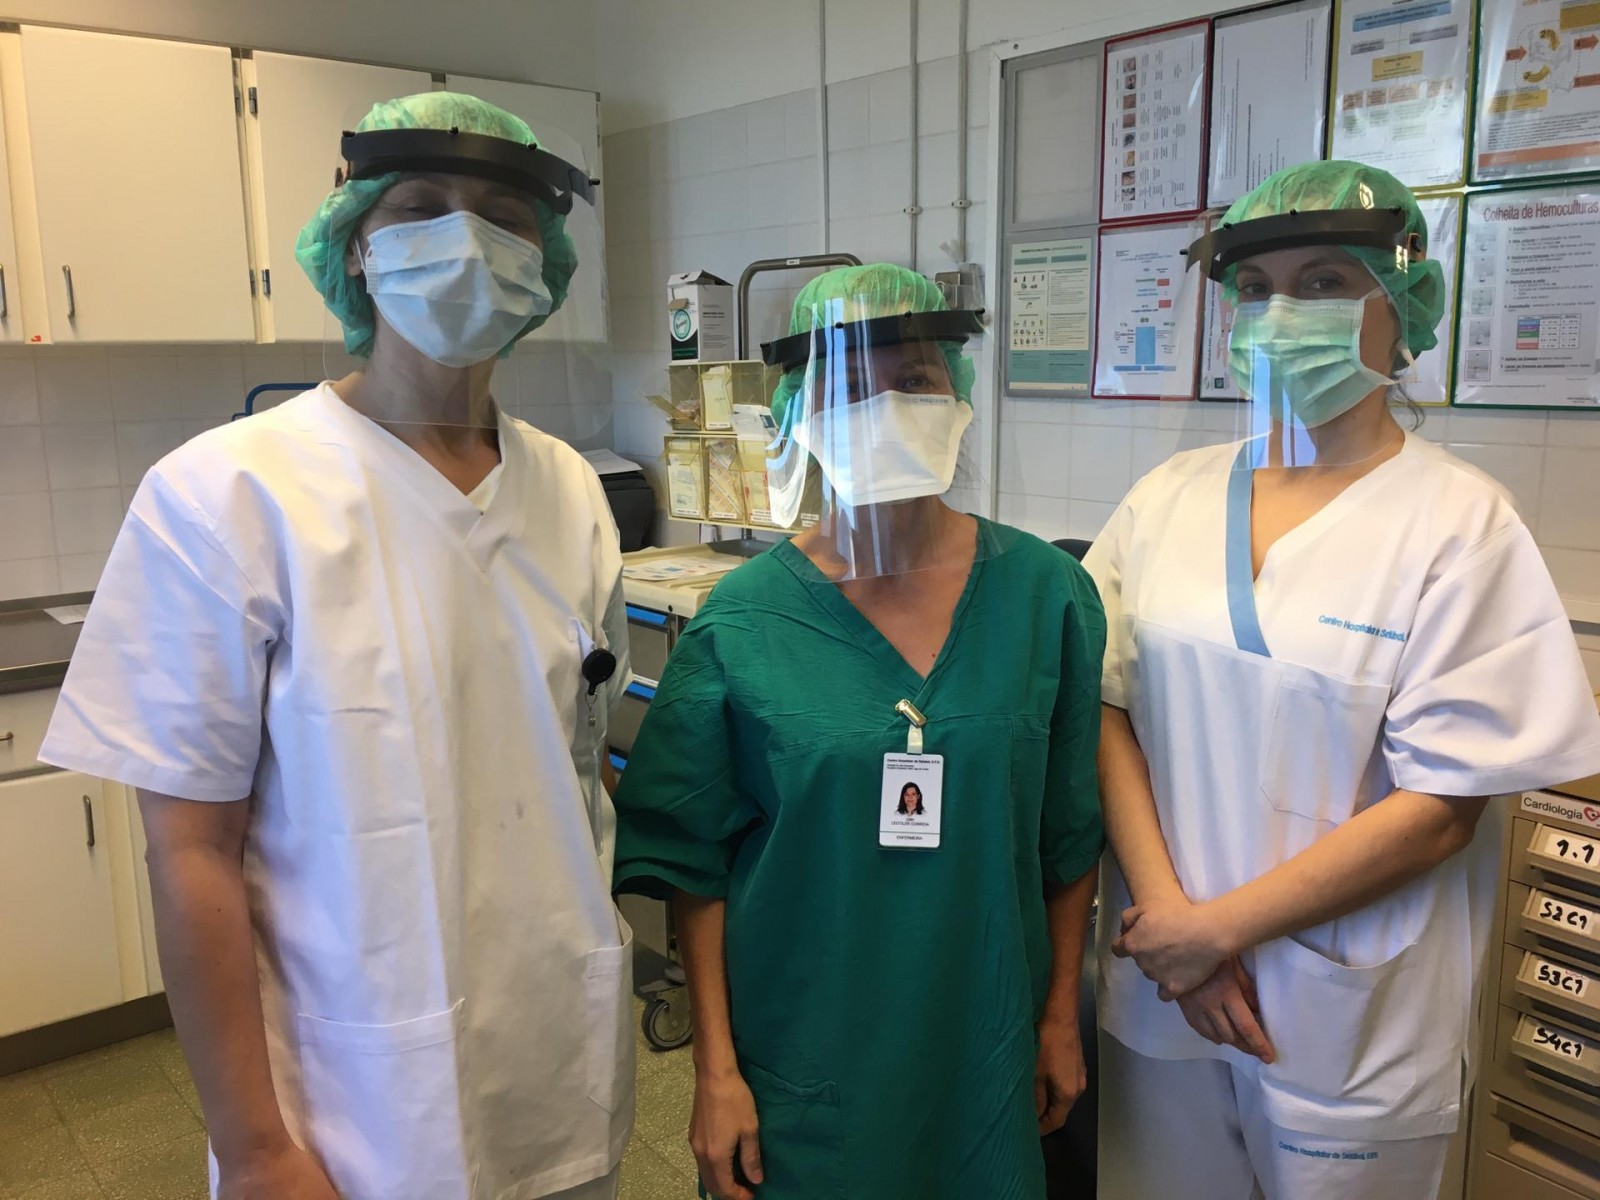 Visteon employees at Palmela wearing the new protective face shields